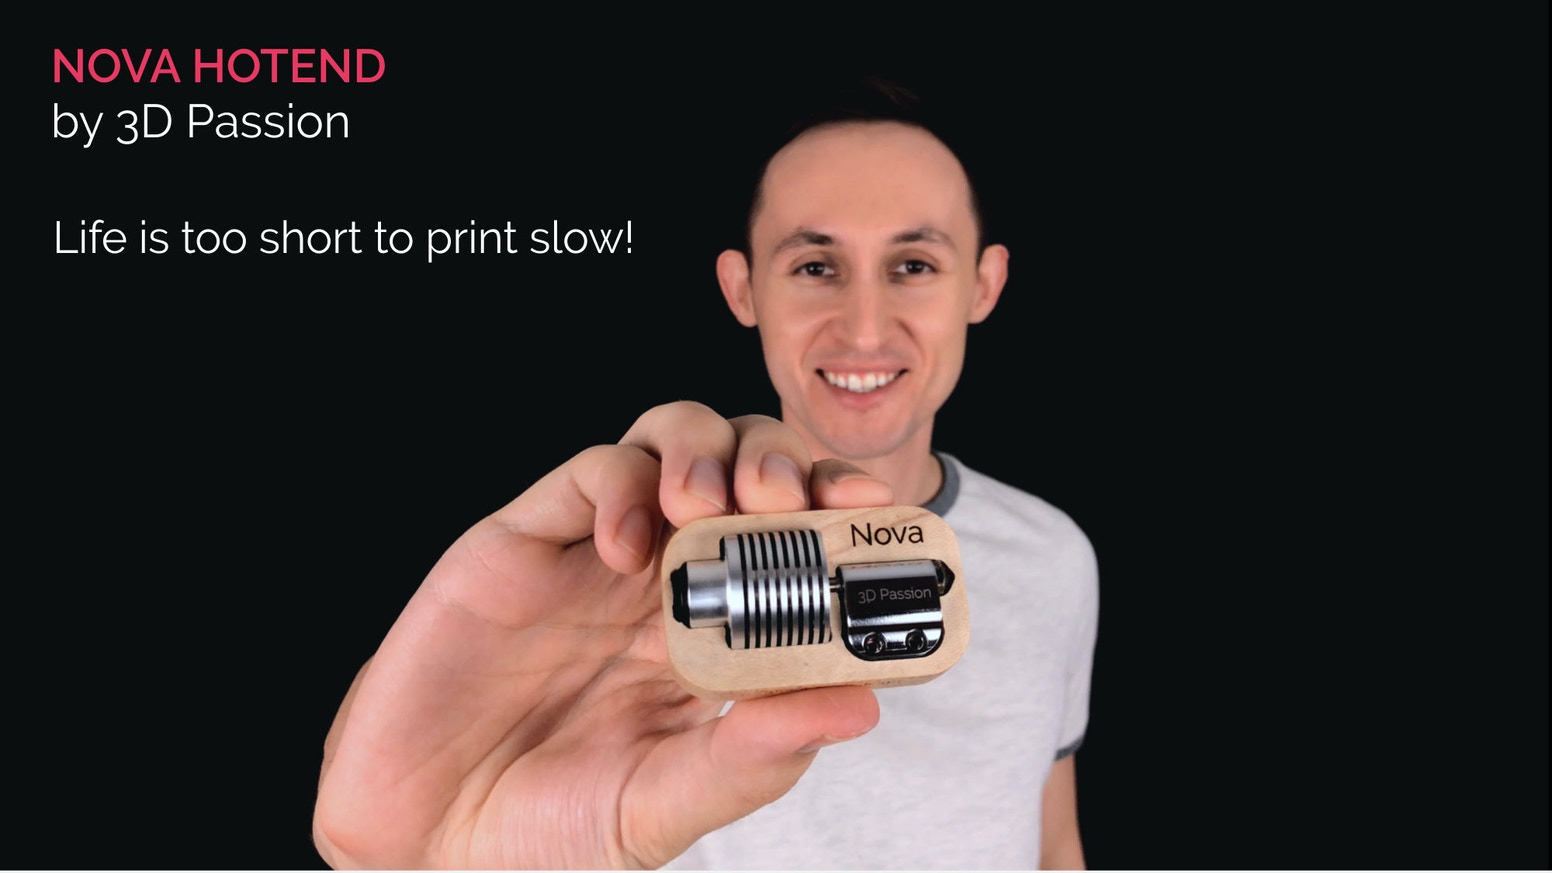 High performance 3D Printer hotend by 3D Passion.